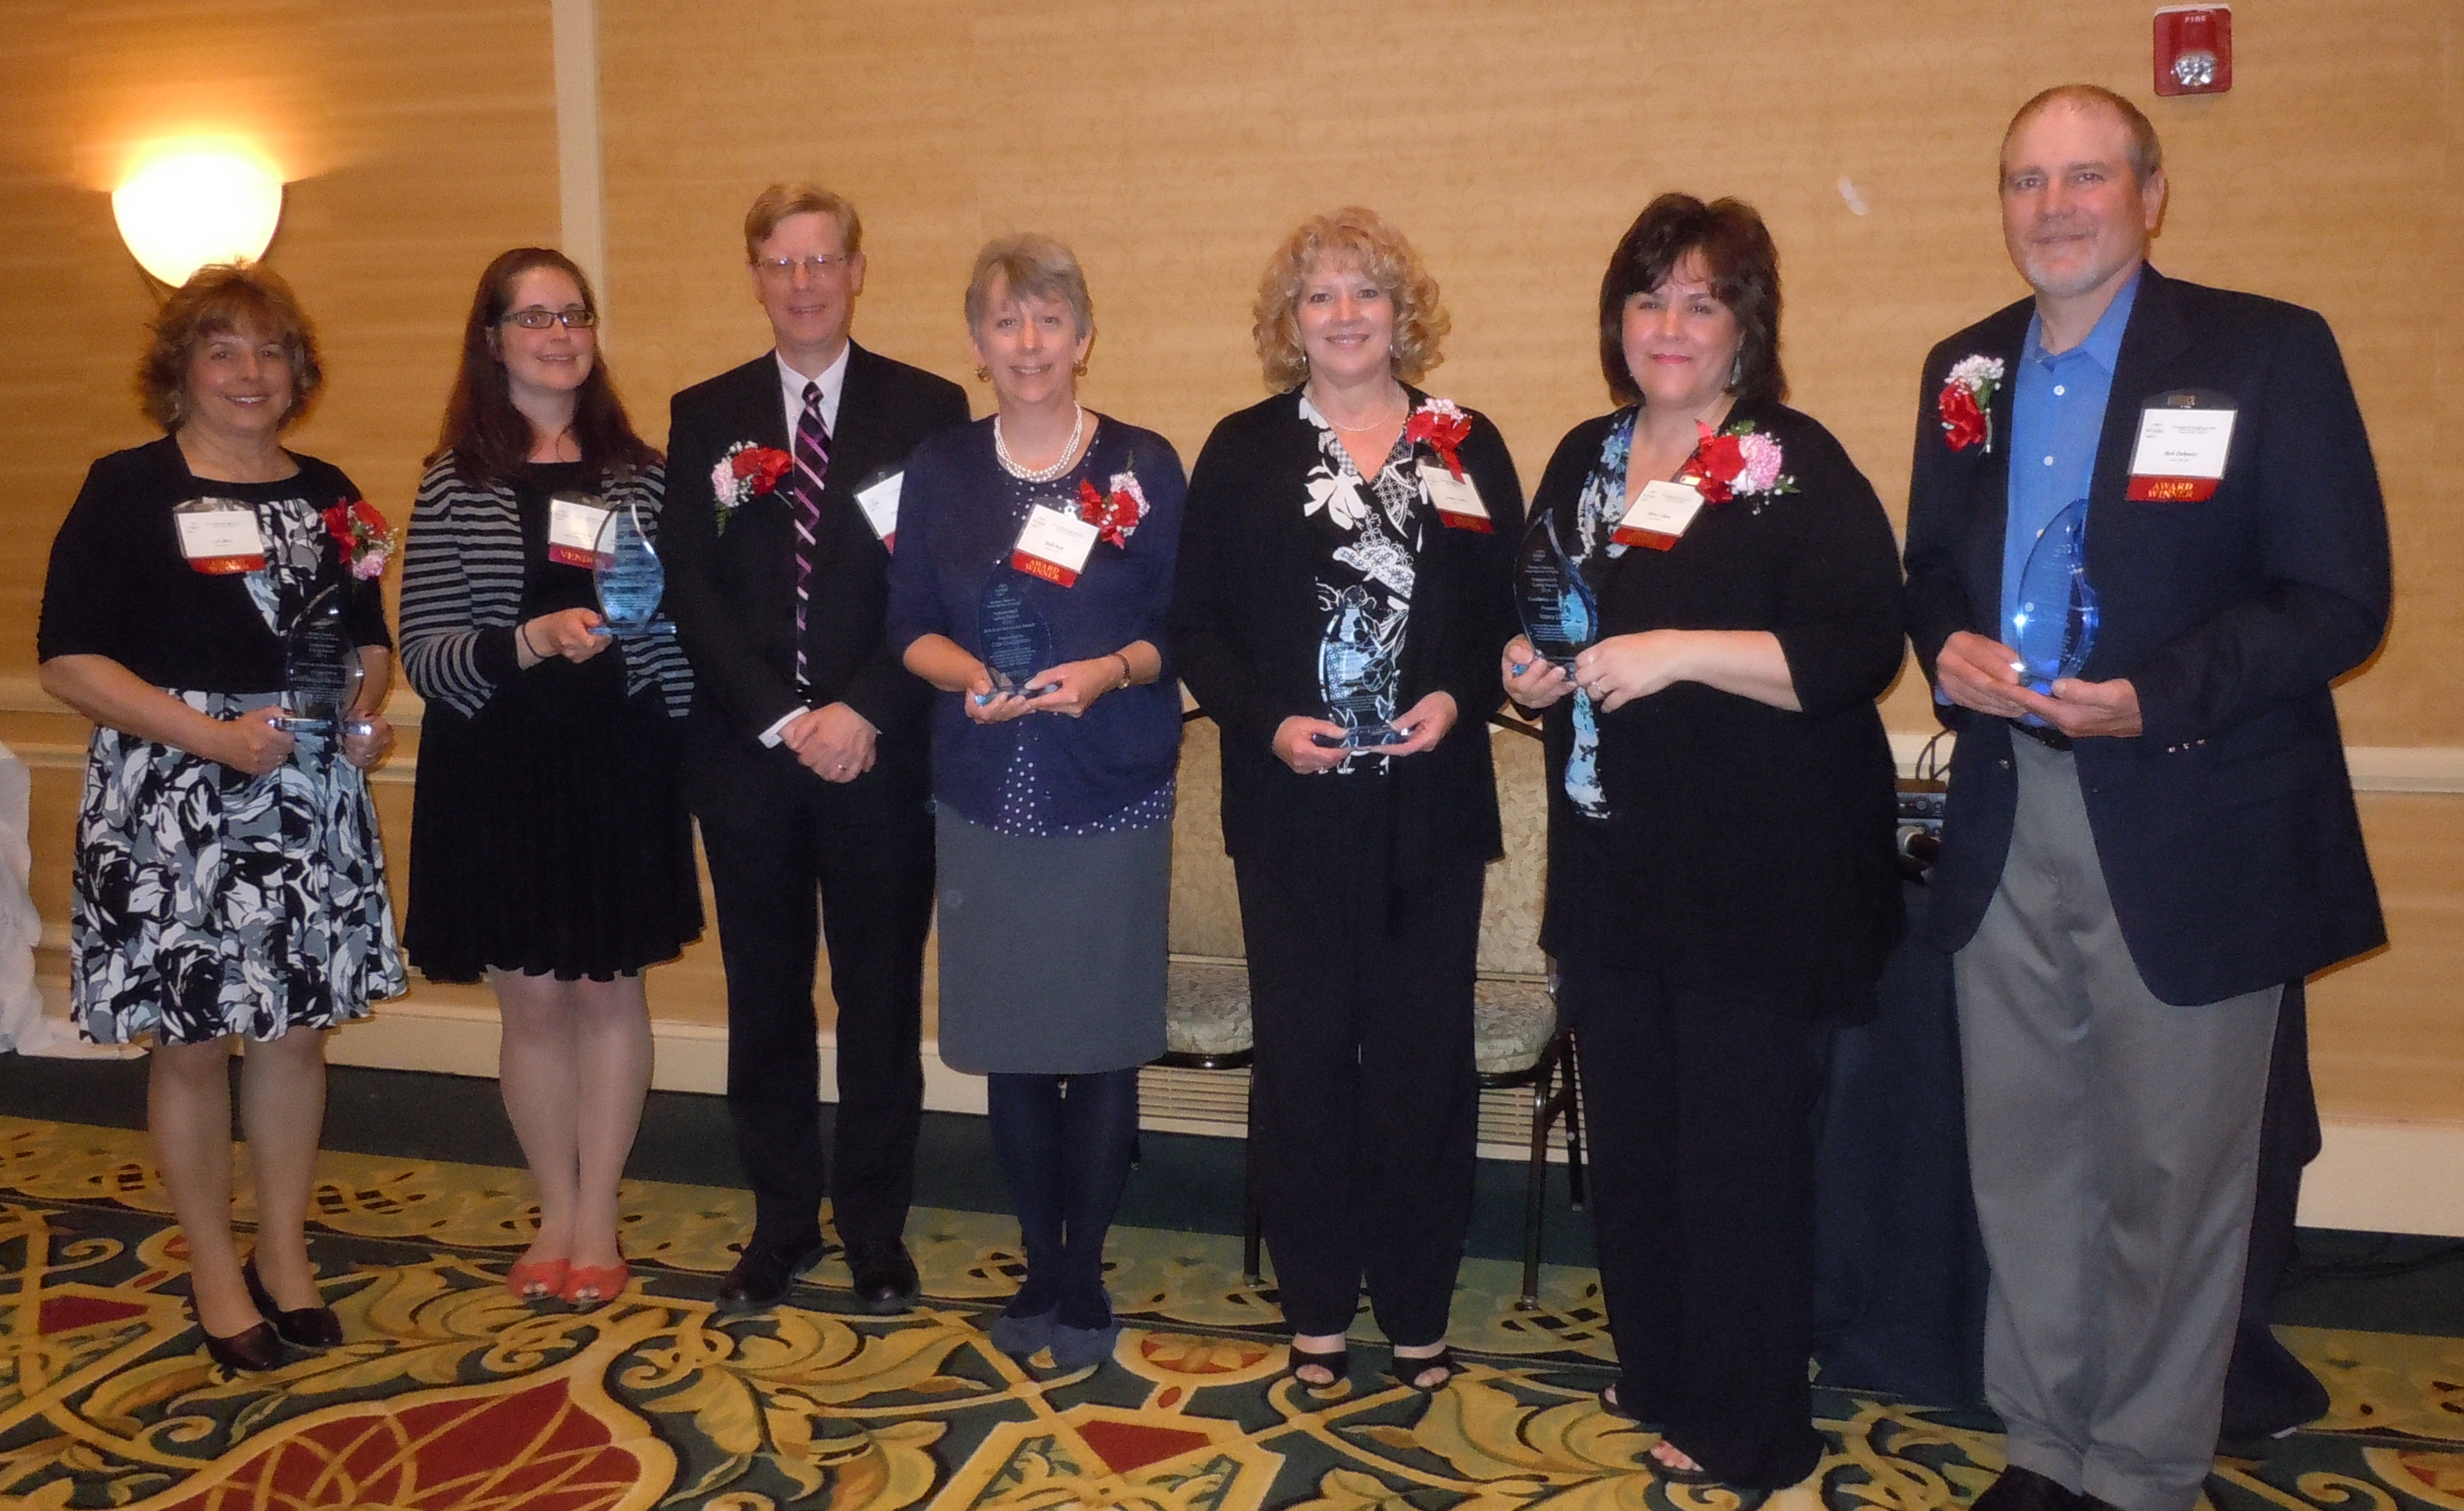 Beth Glas and Steve Hansler (second and third from left) with the other recipients of WRAAA's 2014 Independent Living Awards.